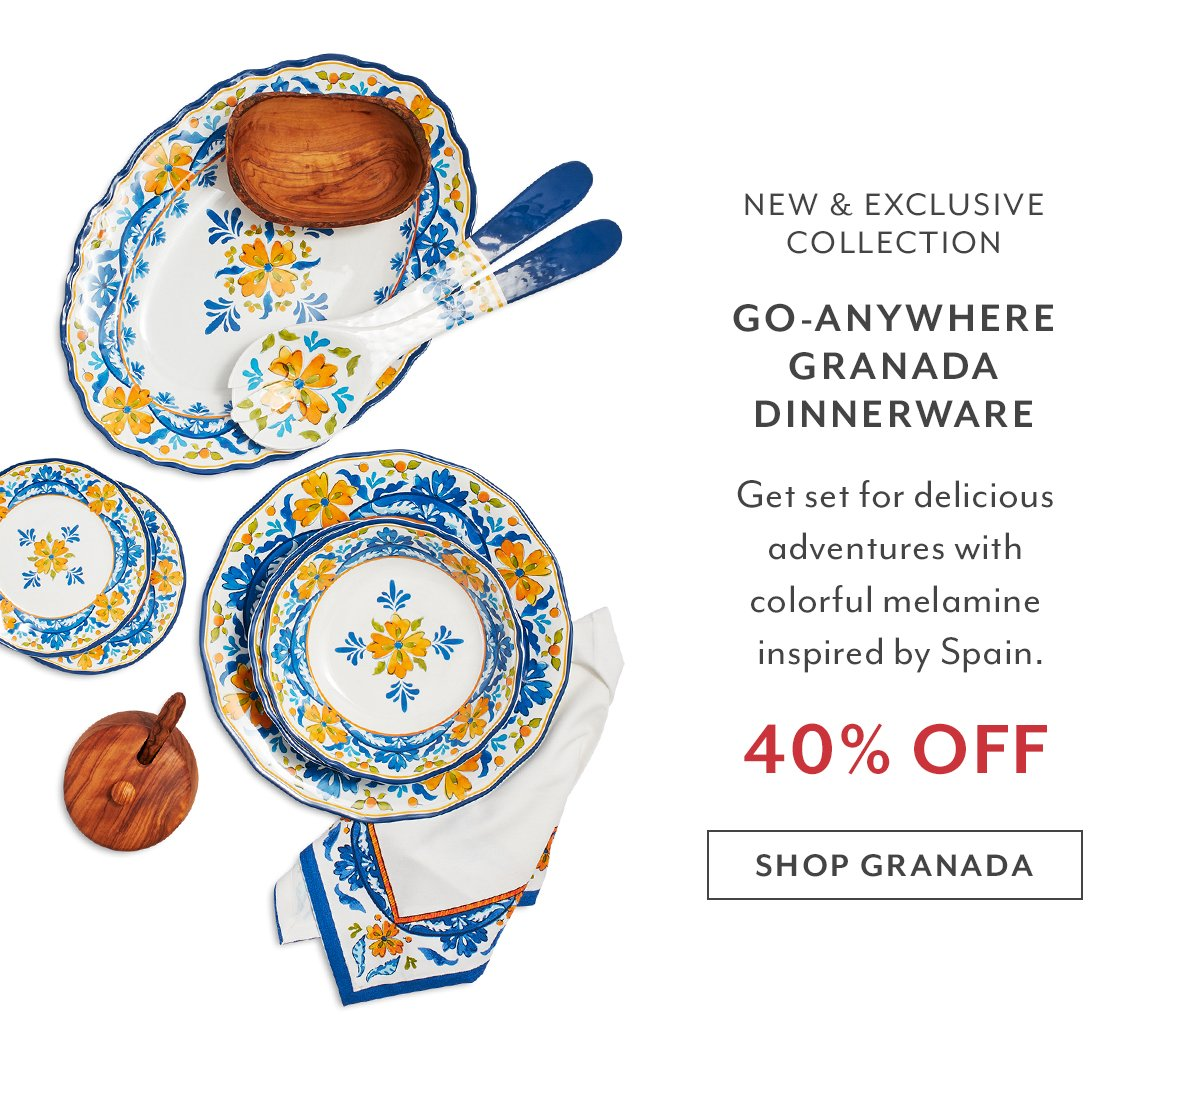 Go-Anywhere Granada Dinnerware